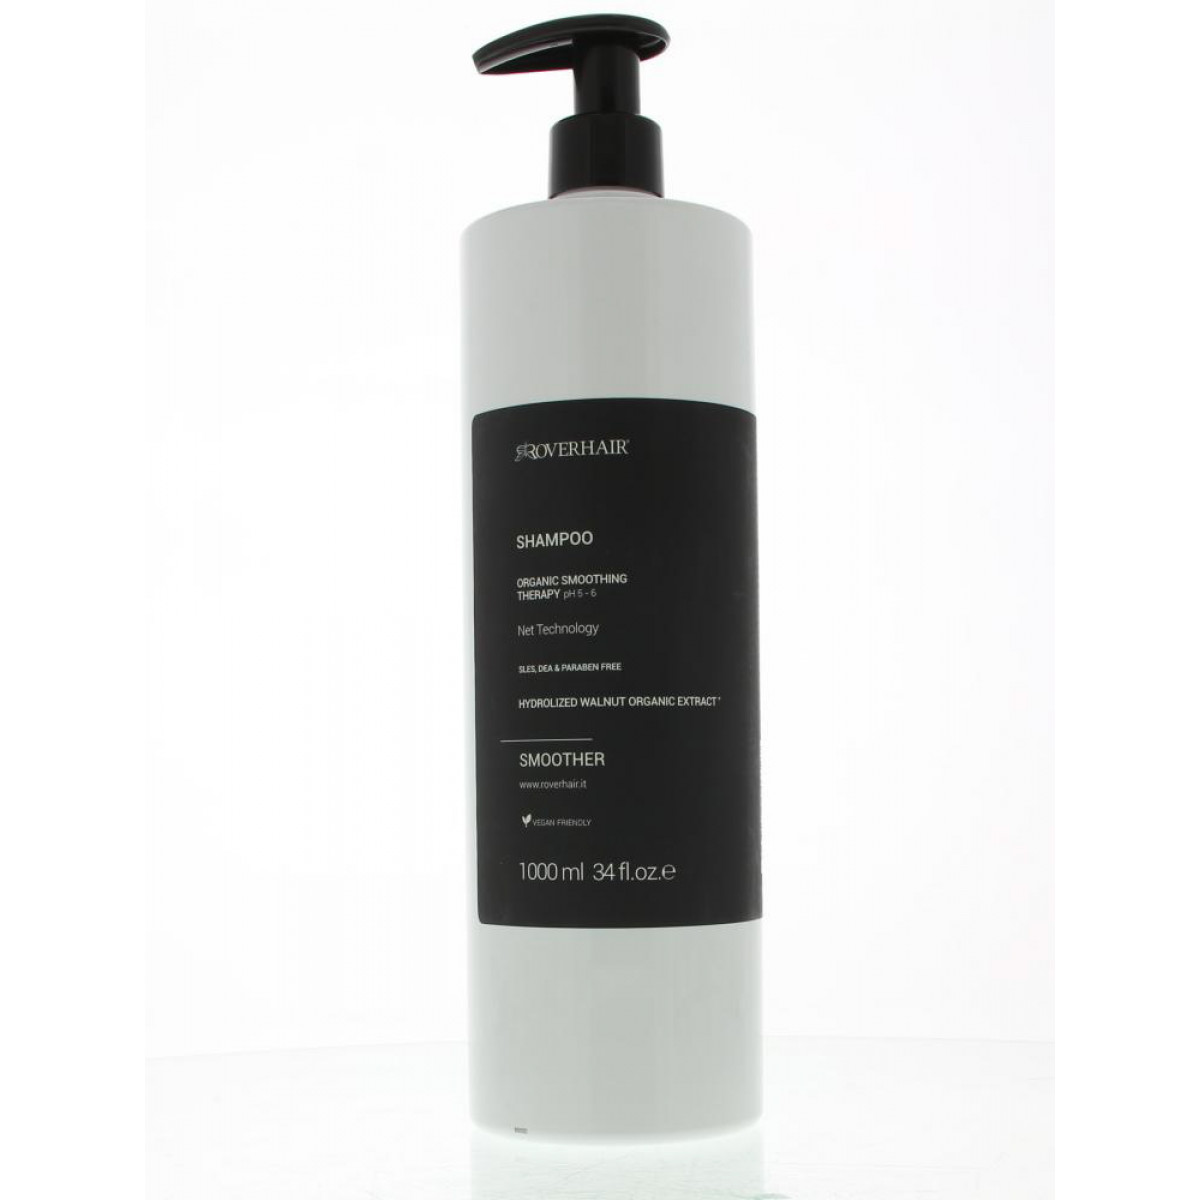 Roverhair Smoother Organic Smoothing Therapy Shampoo Image